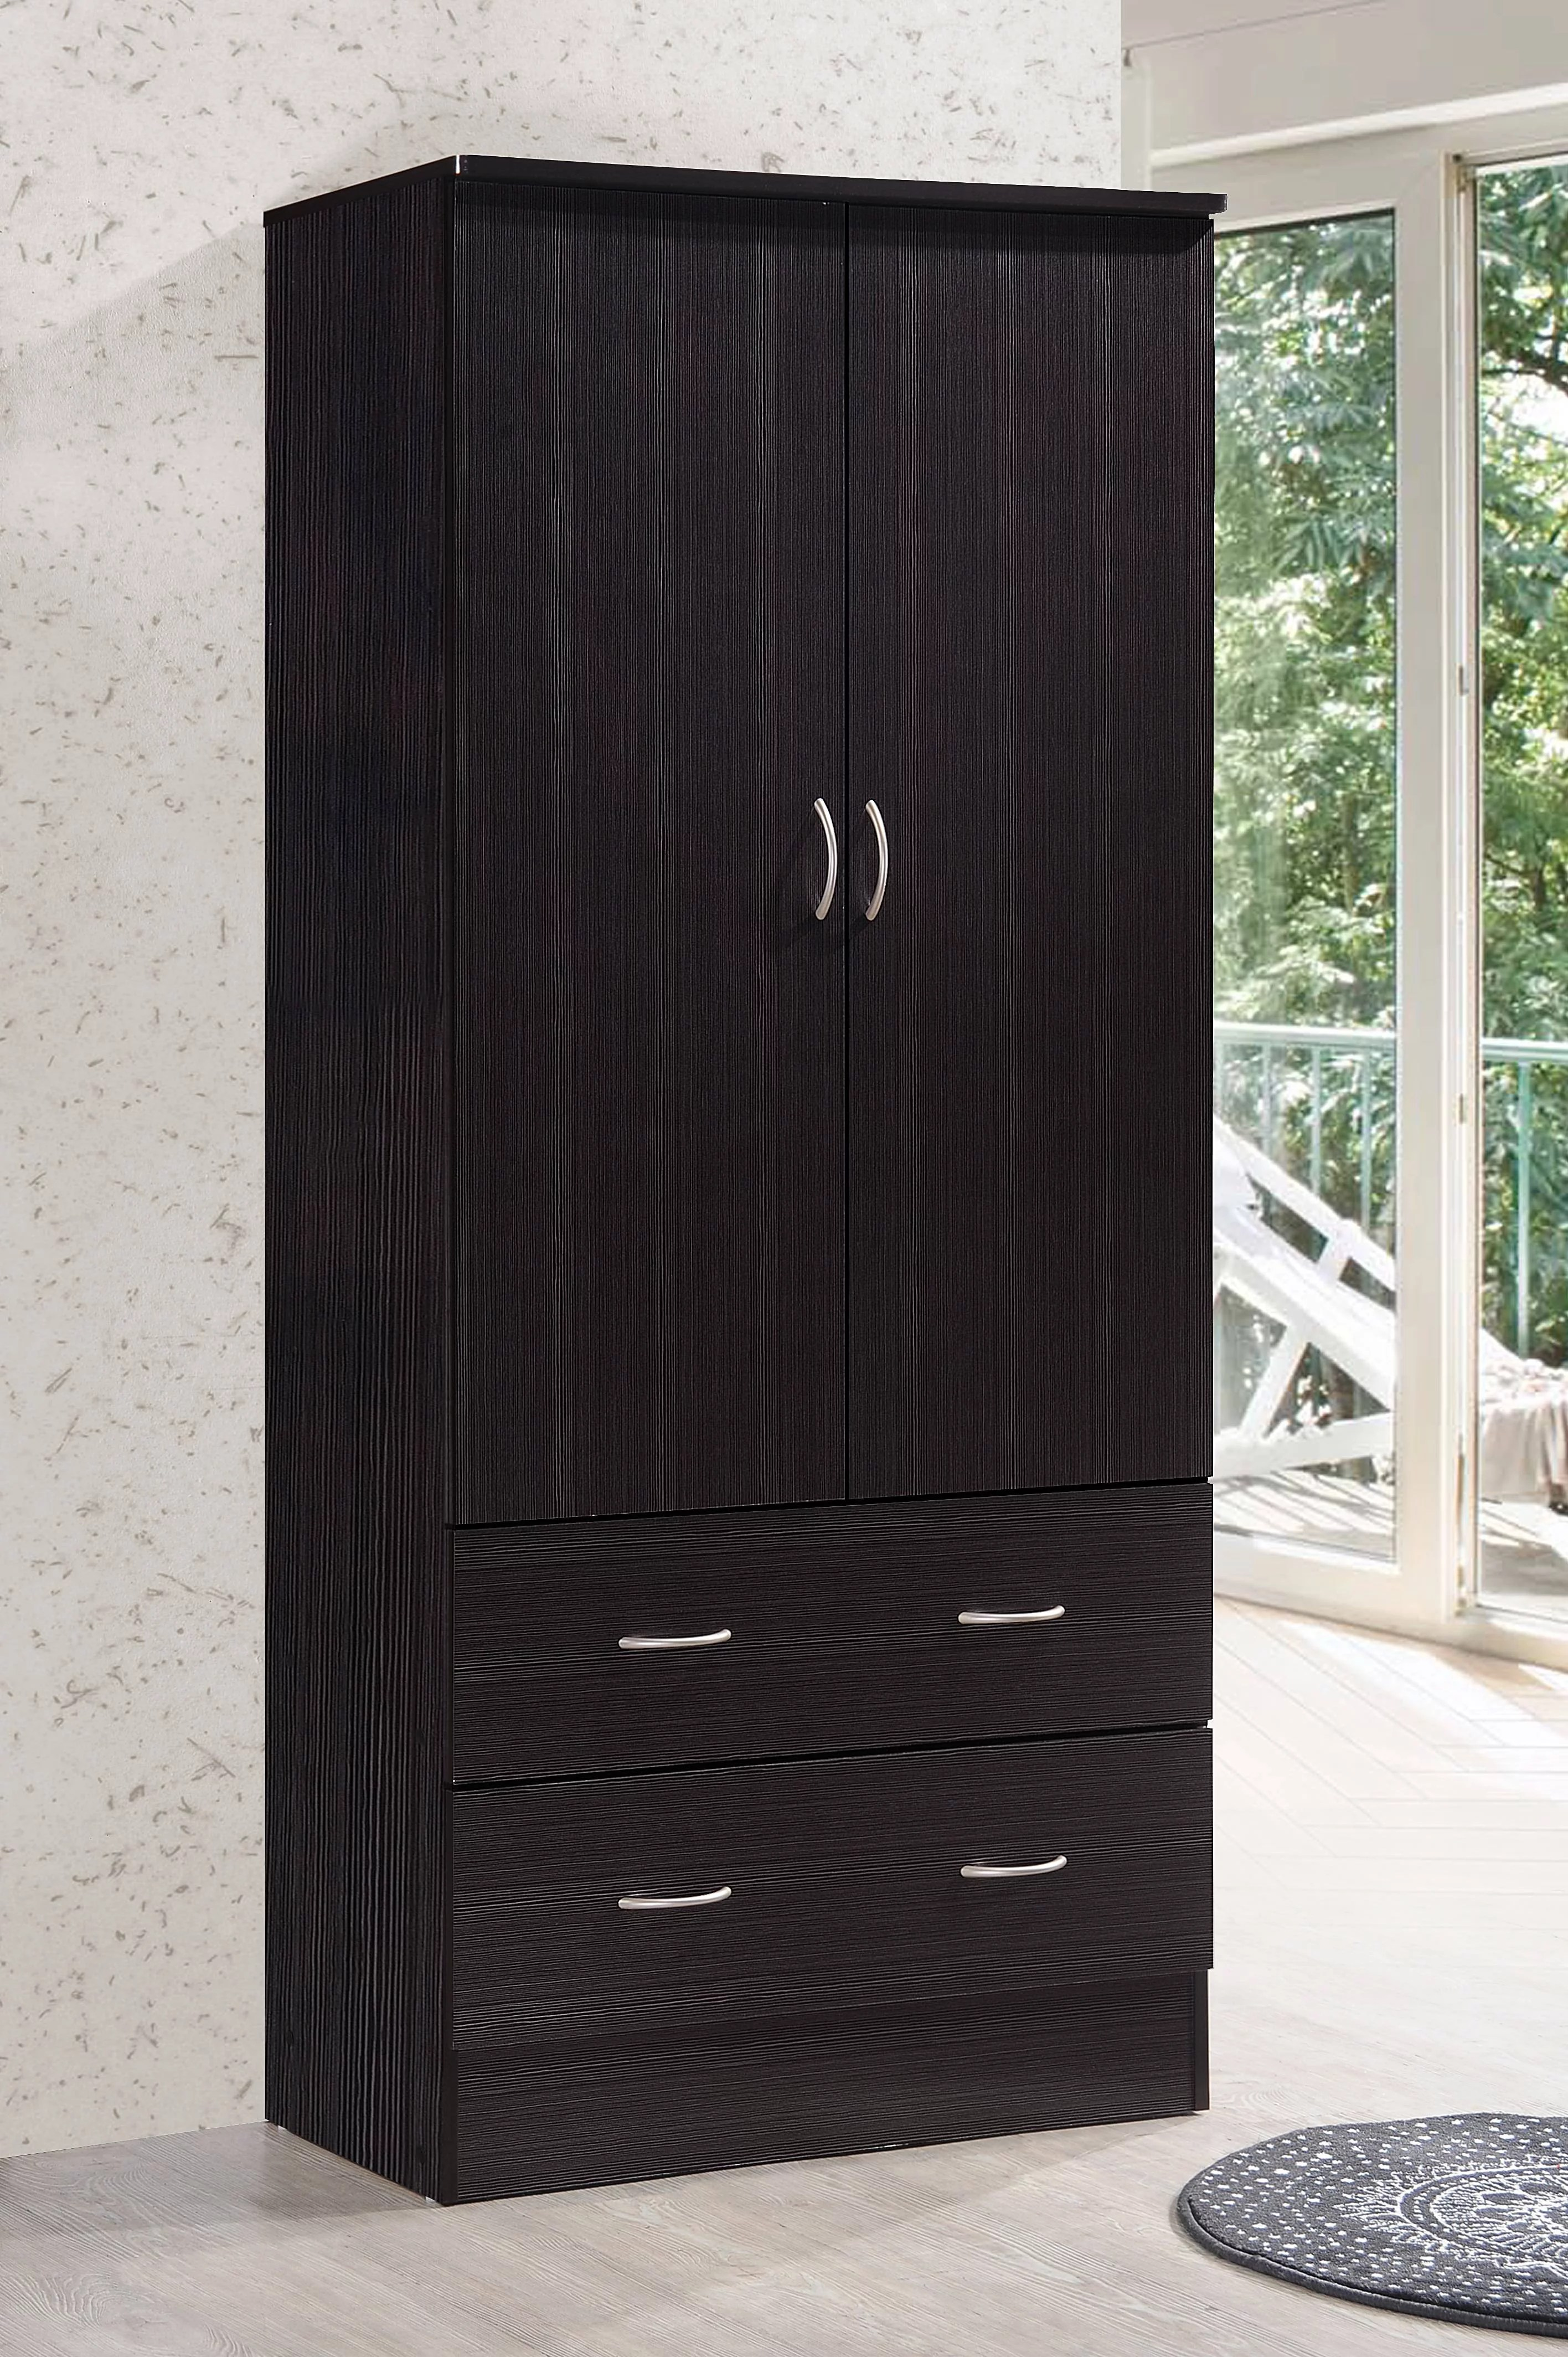 Cabinet Oak Furniture Details About Armoire Wardrobe Closet Bedroom Clothes Organizer Storage Cabinet Wood Furniture